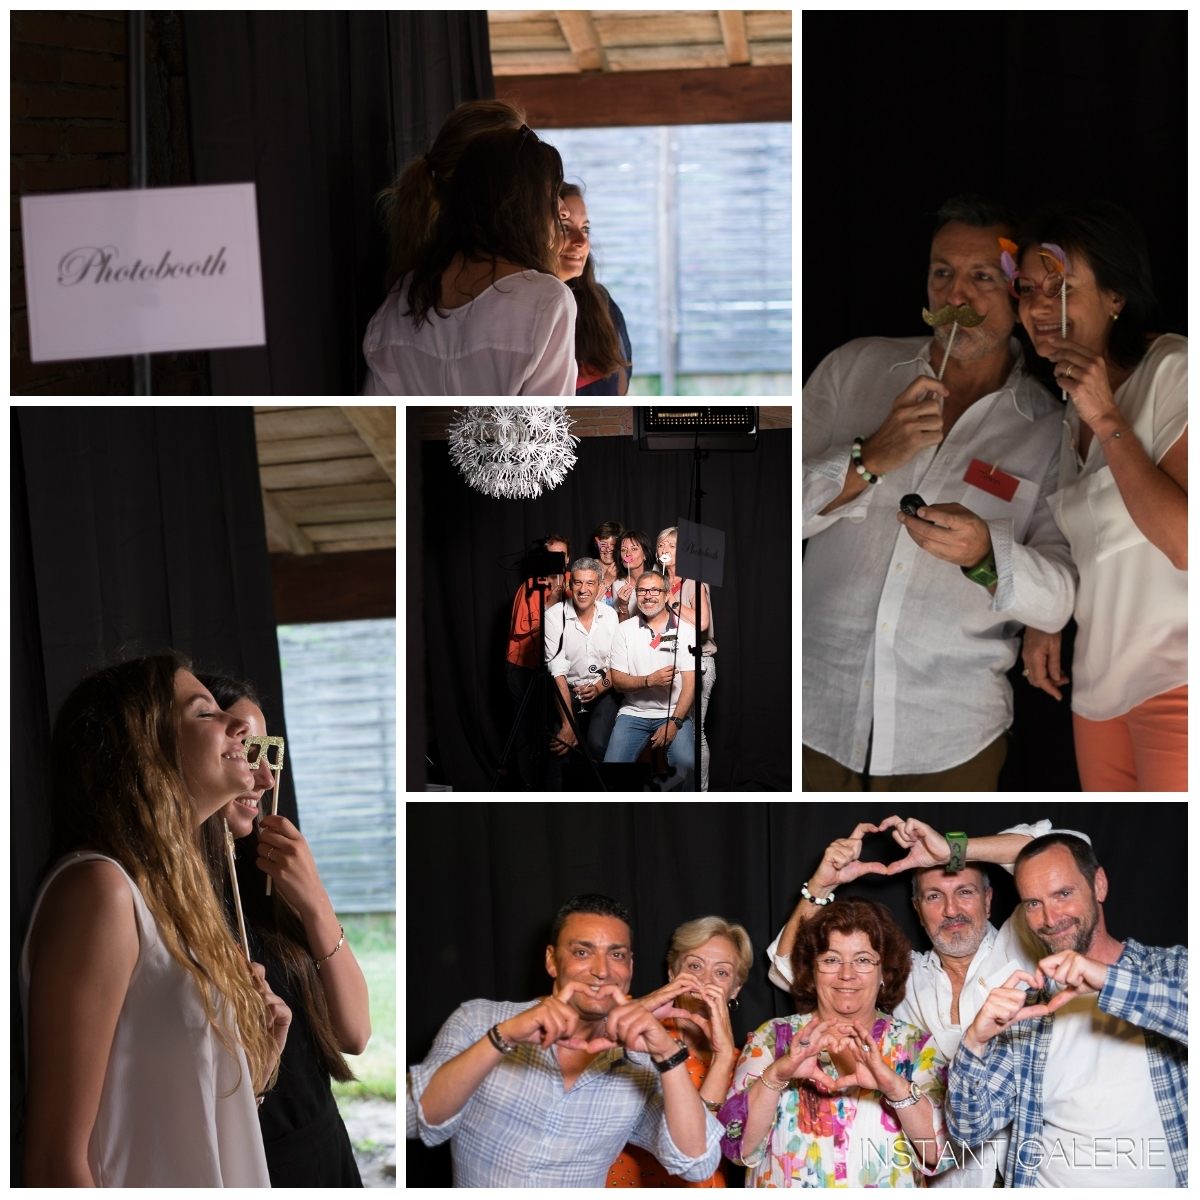 Photobooth-Anniversaire-Mariage-Toulouse